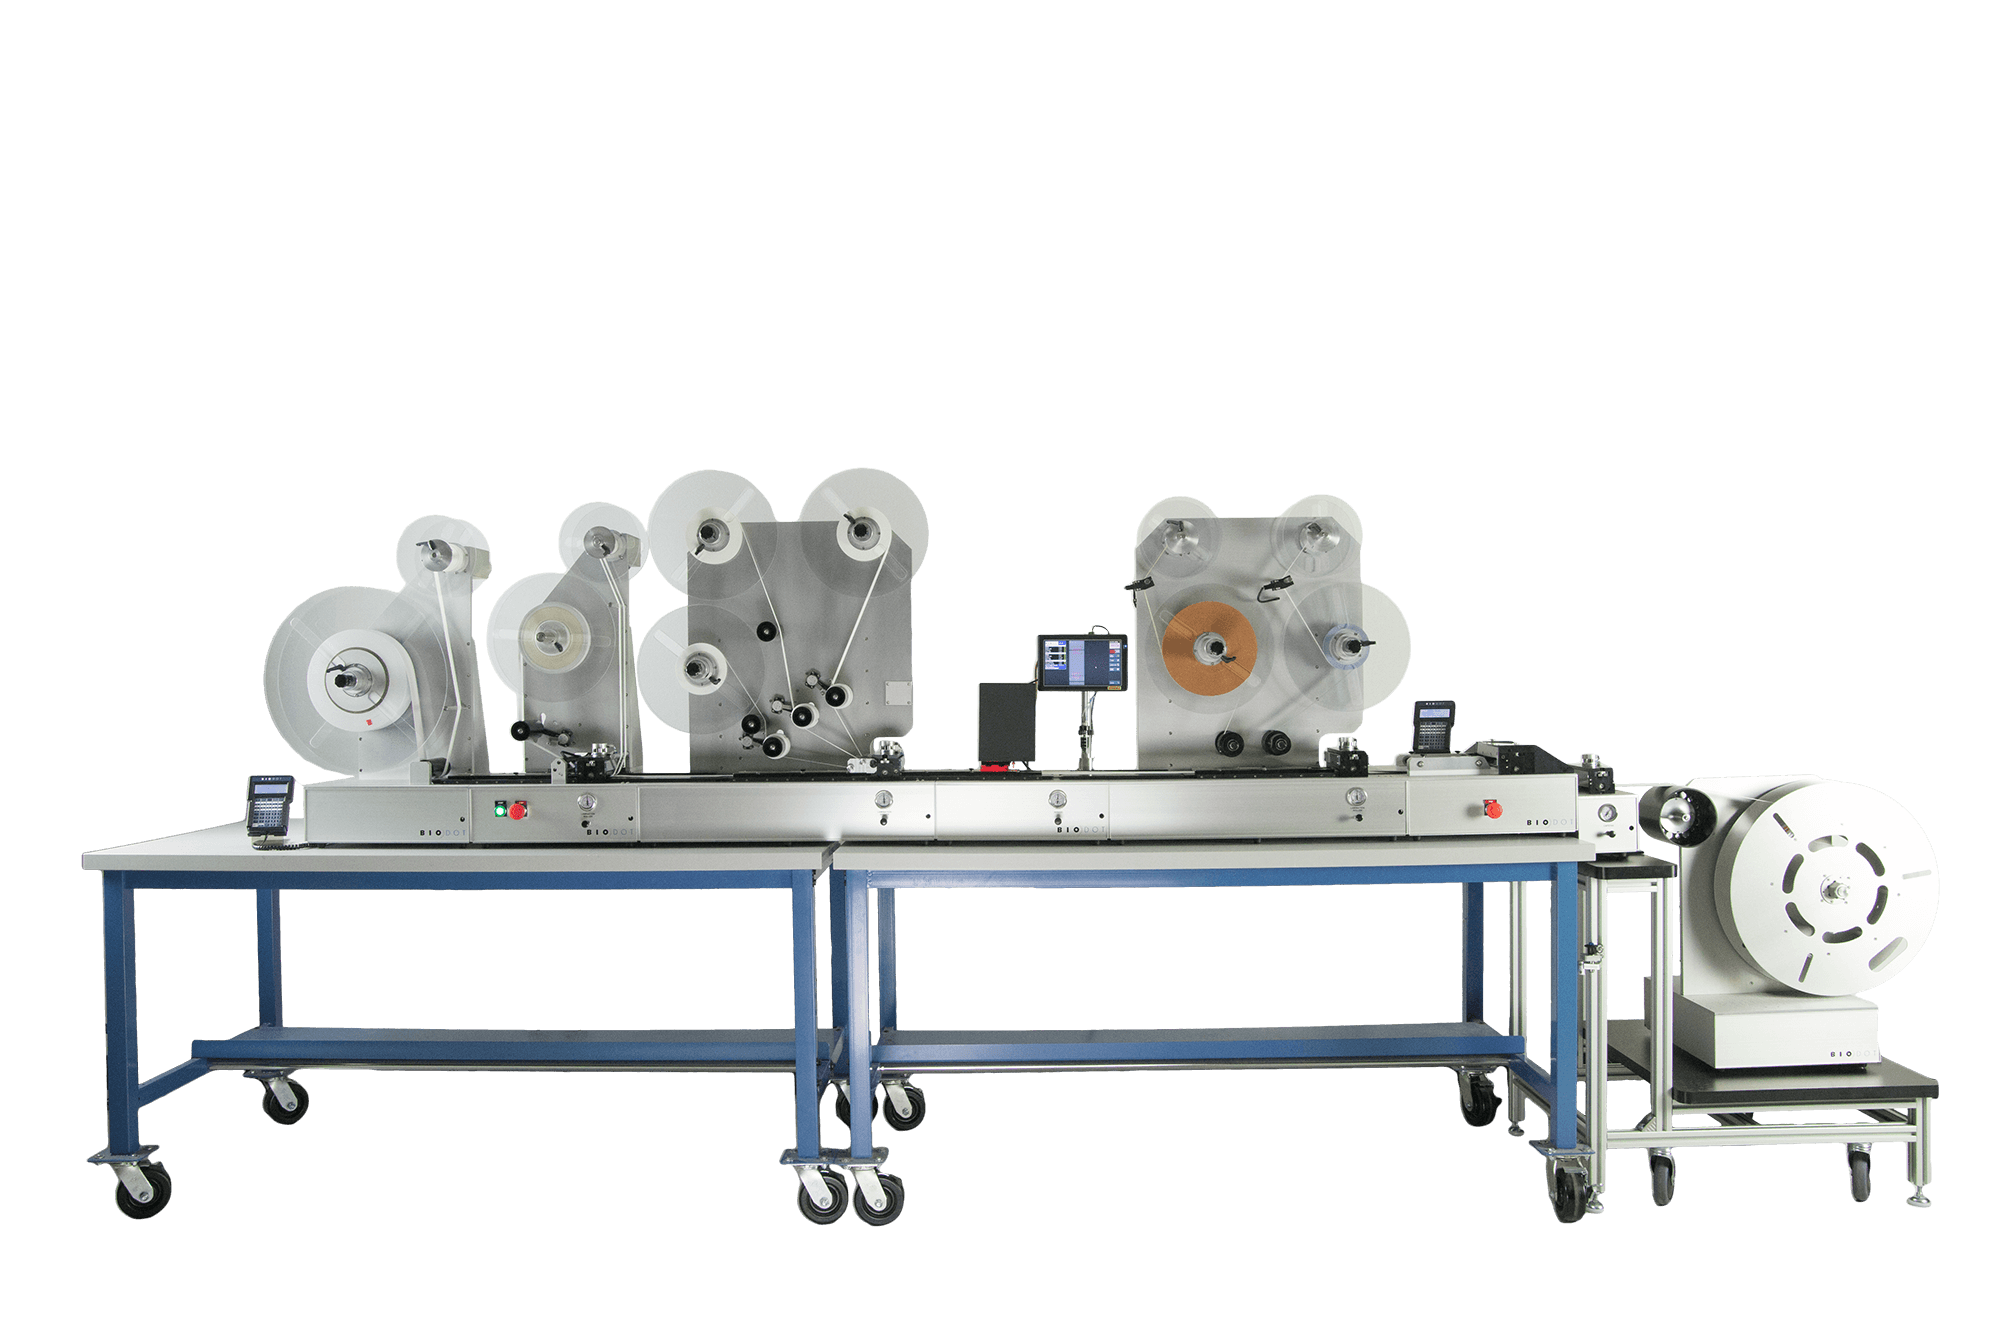 LM9000 laminator for lateral flow test manufacturing